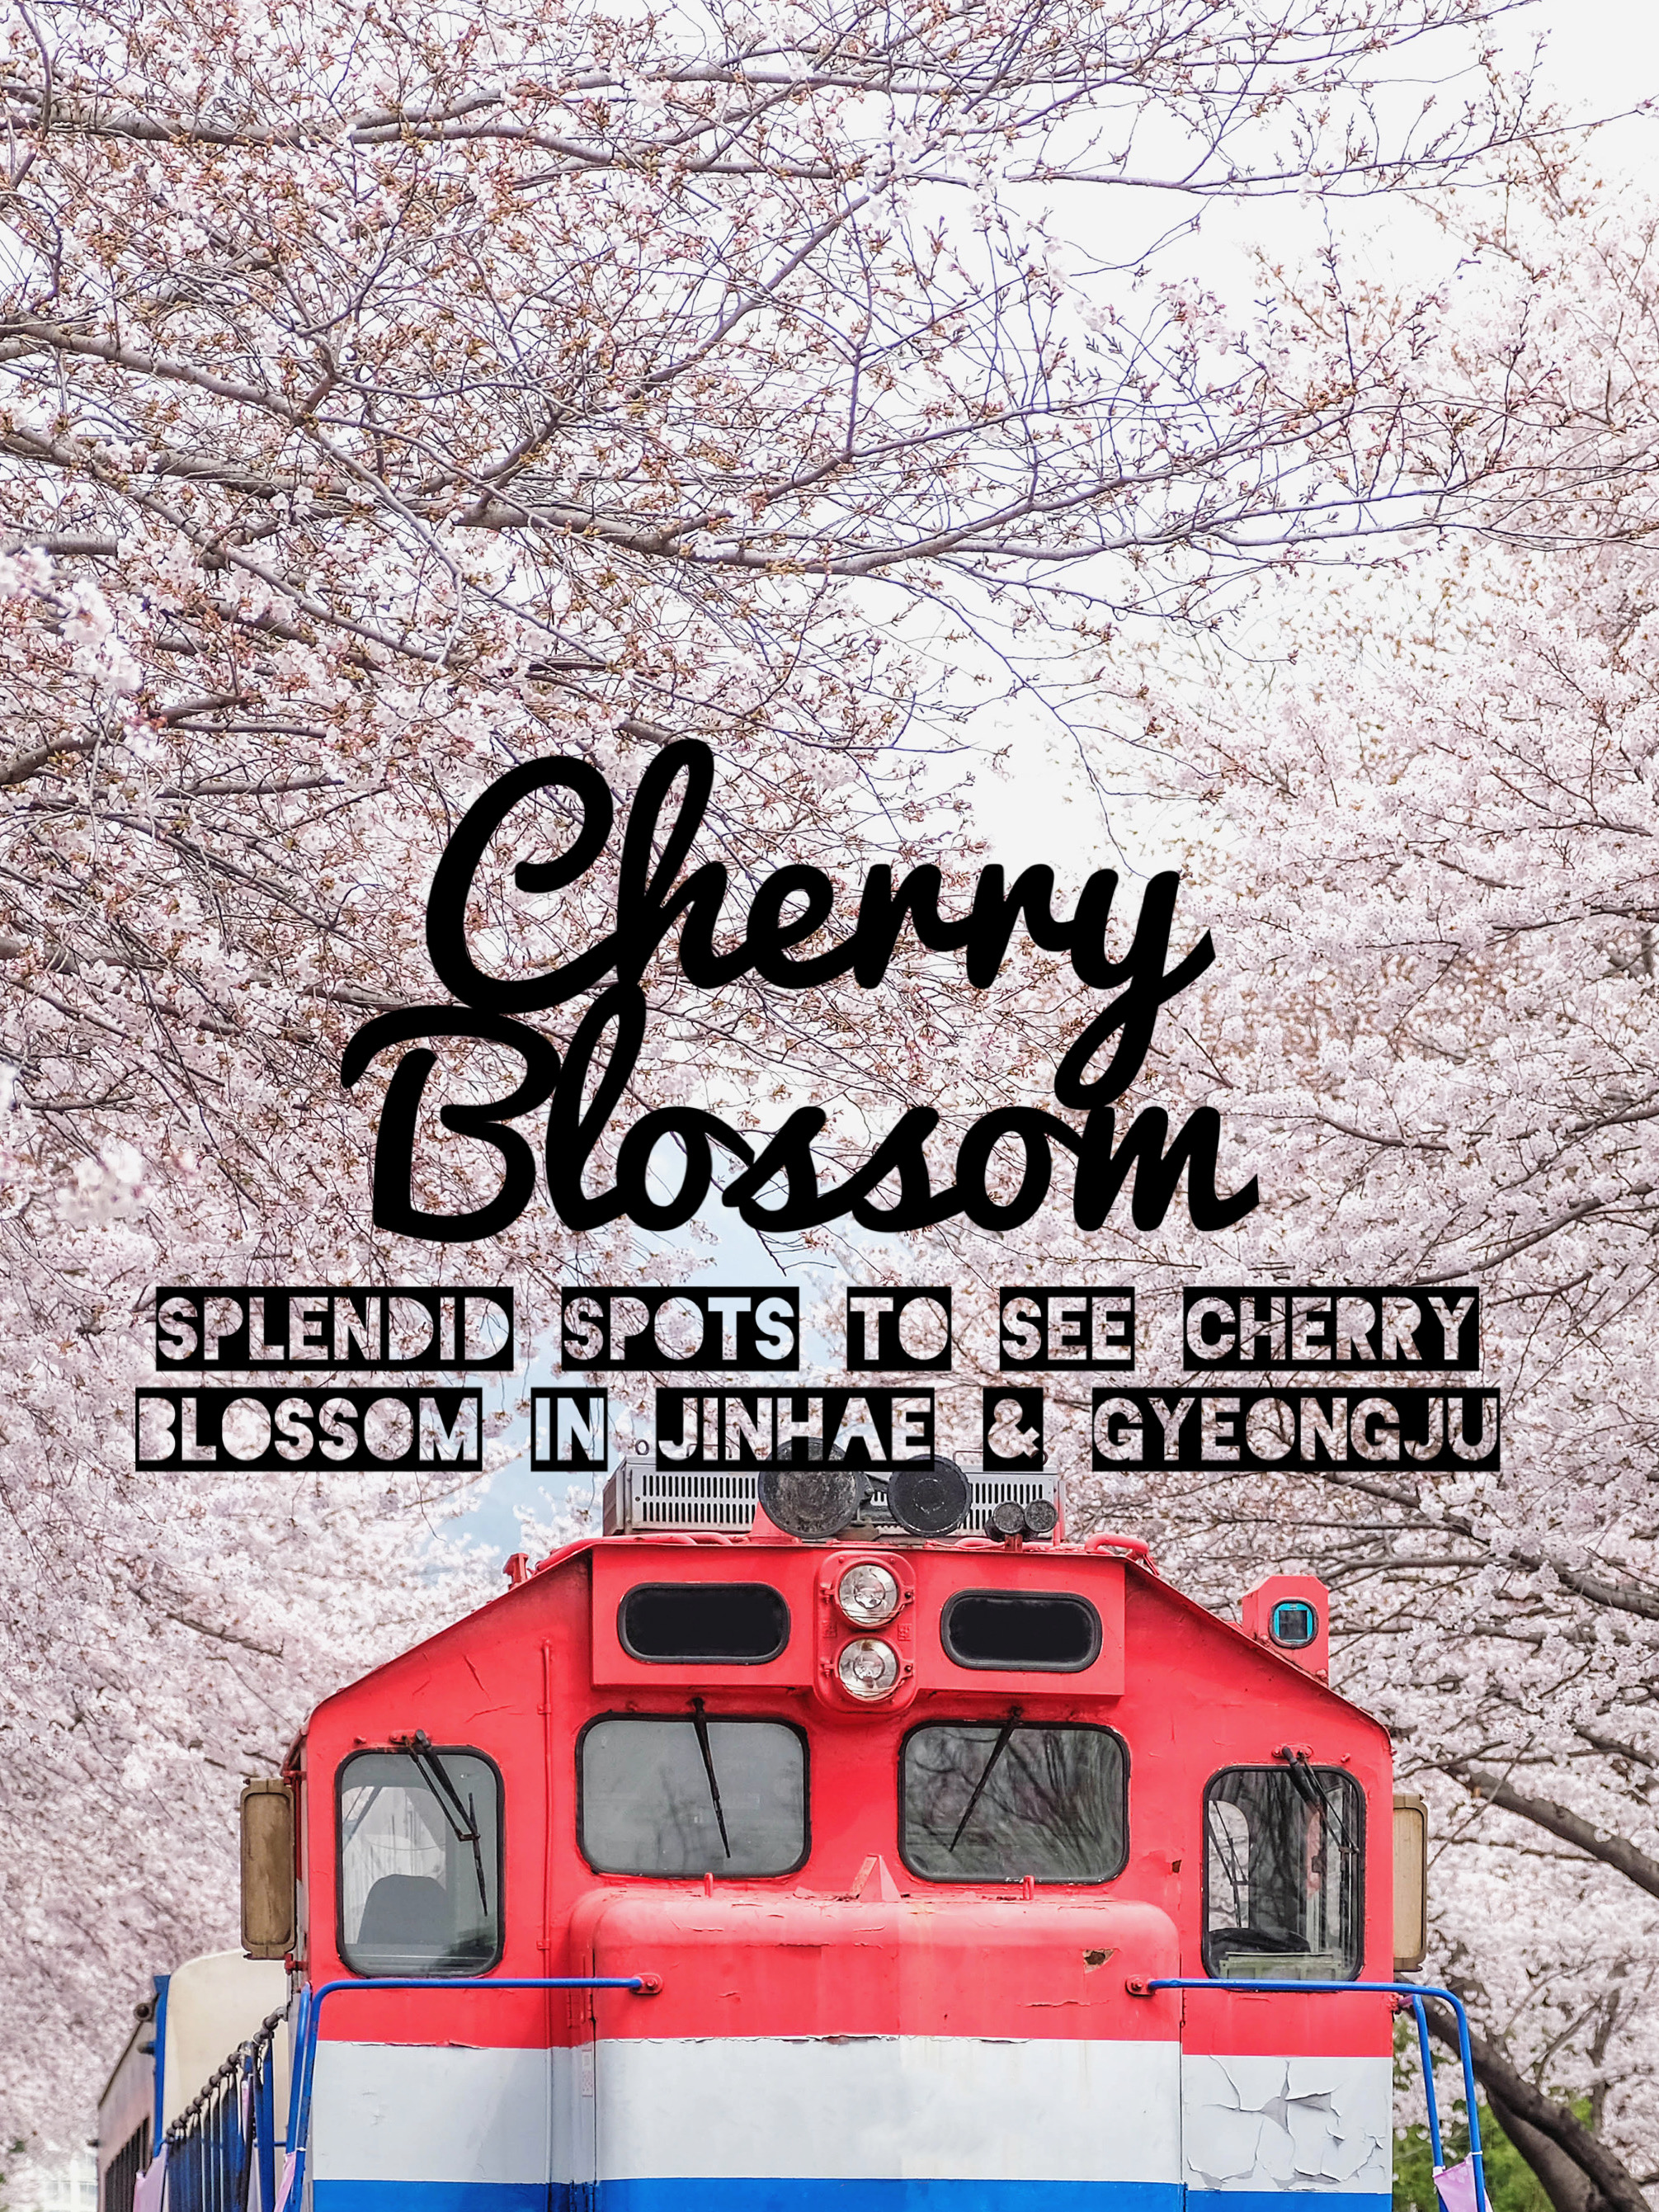 Splendid Spots to See Cherry Blossom in Jinhae and Gyeongju